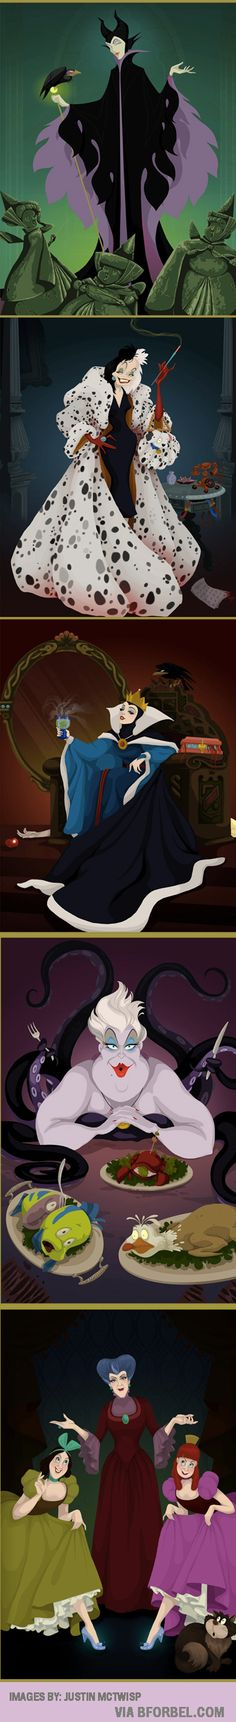 b for bel: If Disney Villains had Won... this is what would happen.